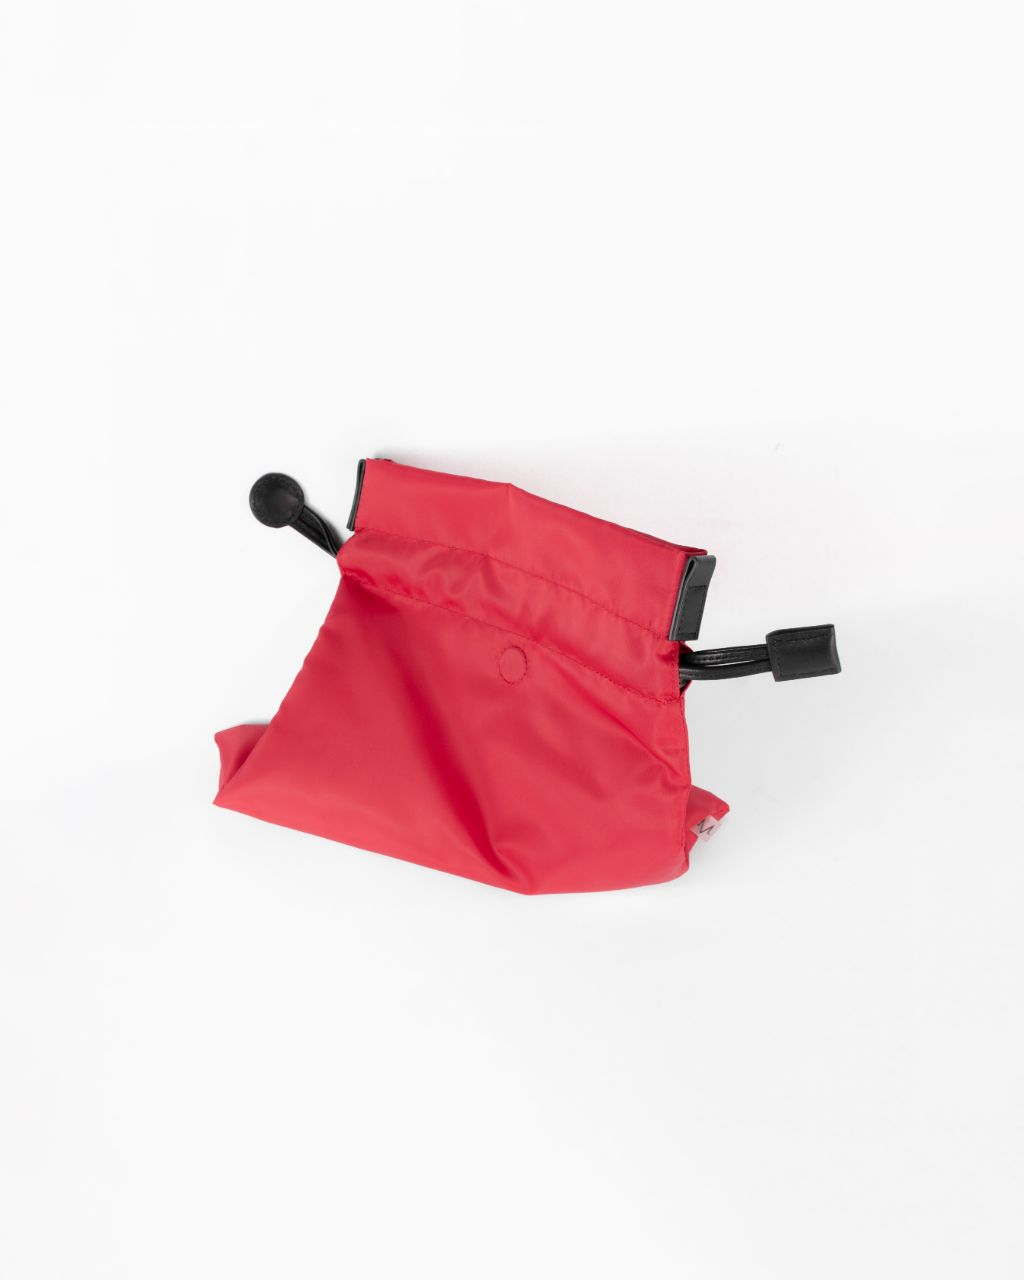 beans bag in red water repellent nylon and leather strap top